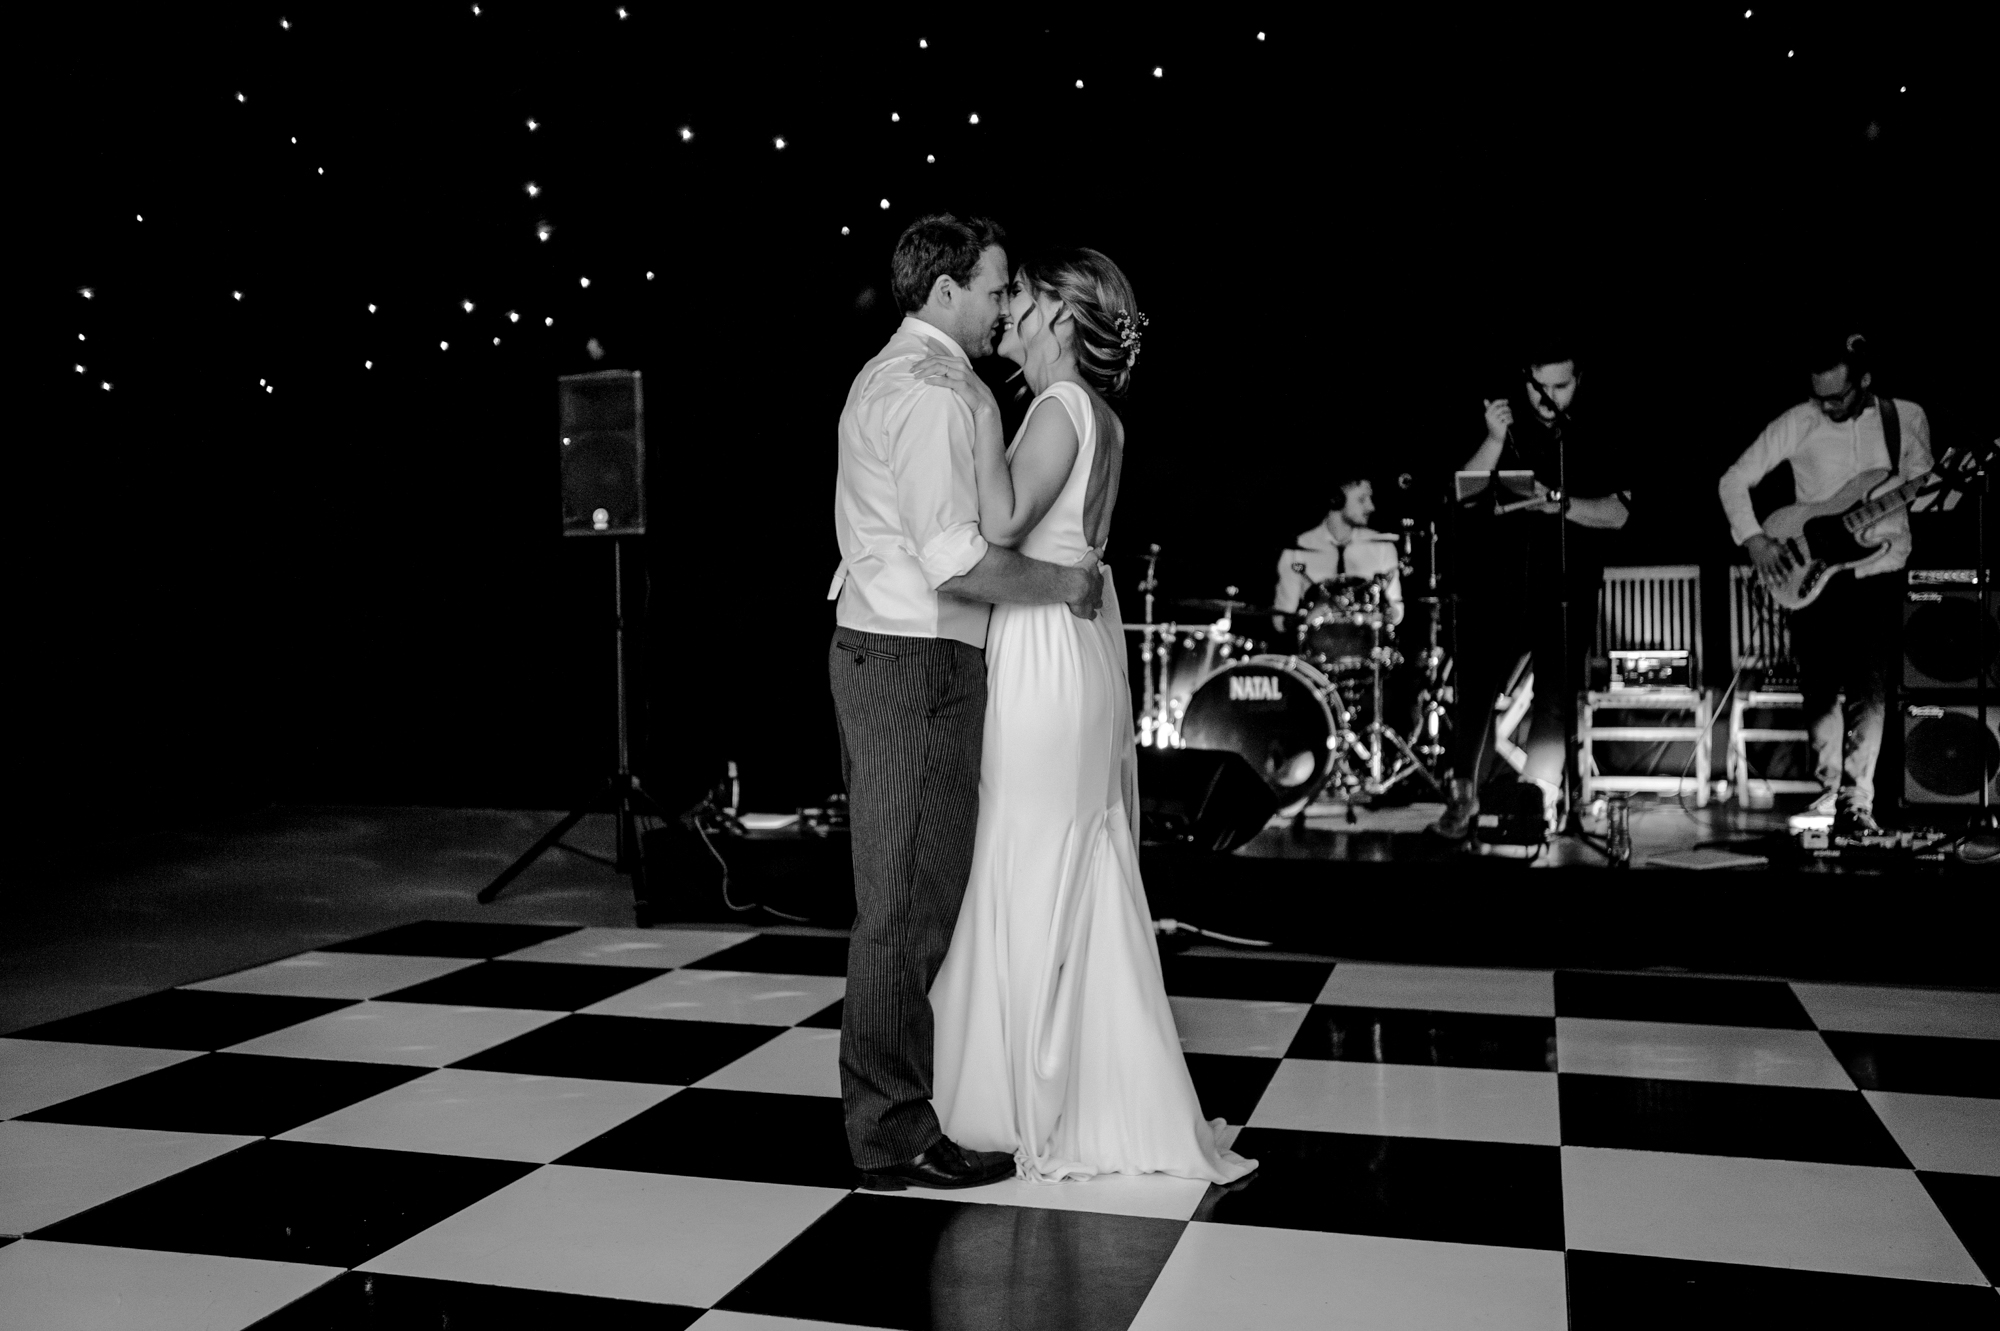 Cotswold Wedding Photography 11.09.1838.jpg